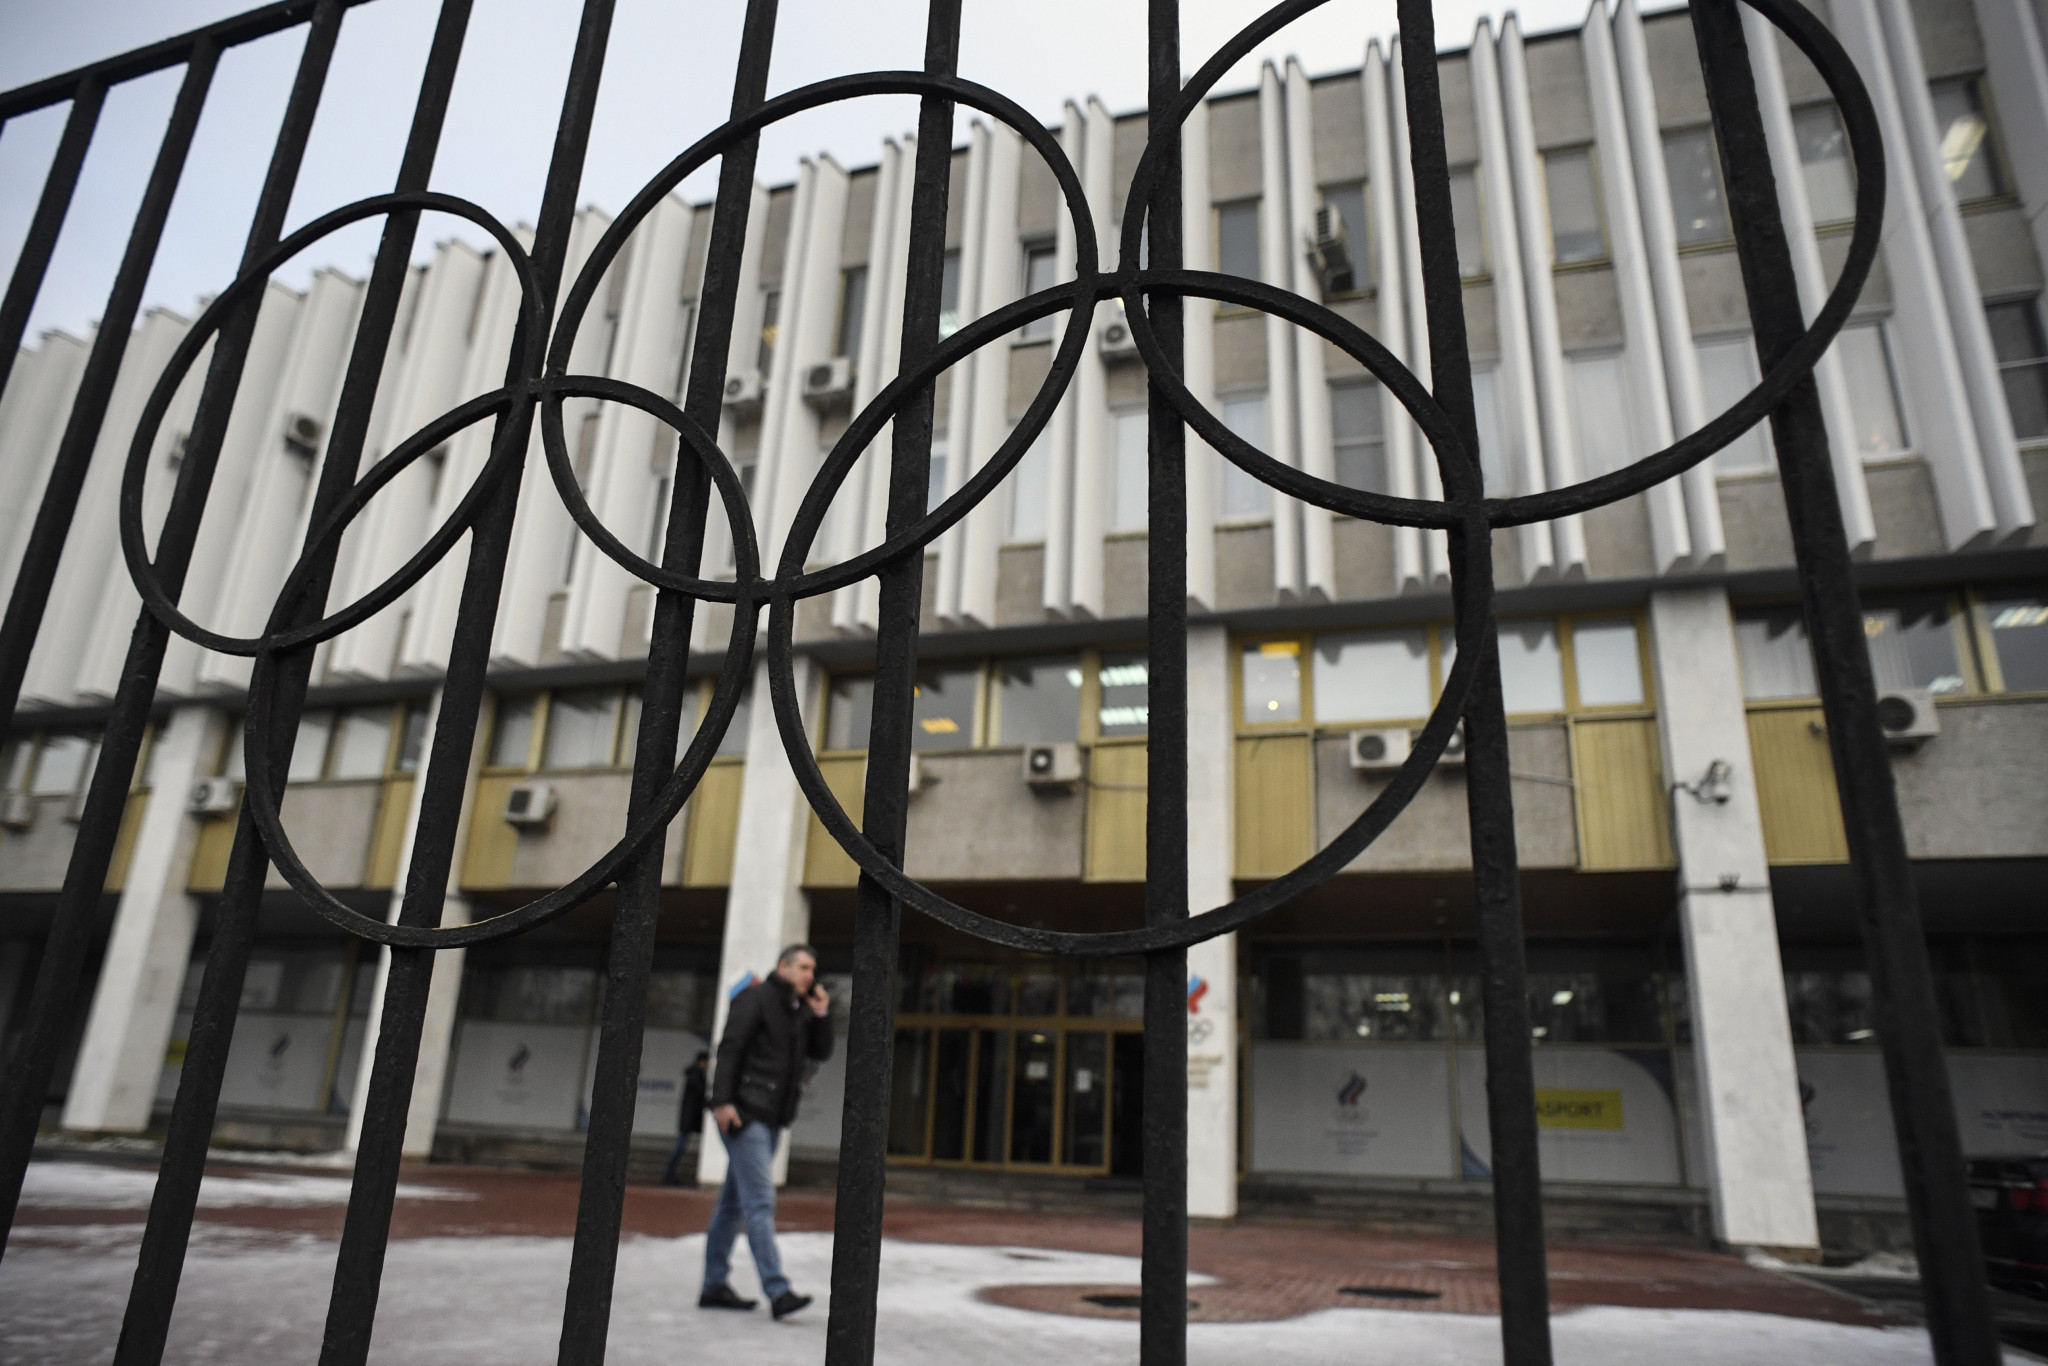 Russian athletes will participate neutrally at Pyeongchang 2018 following the doping crisis in their country ©Getty Images